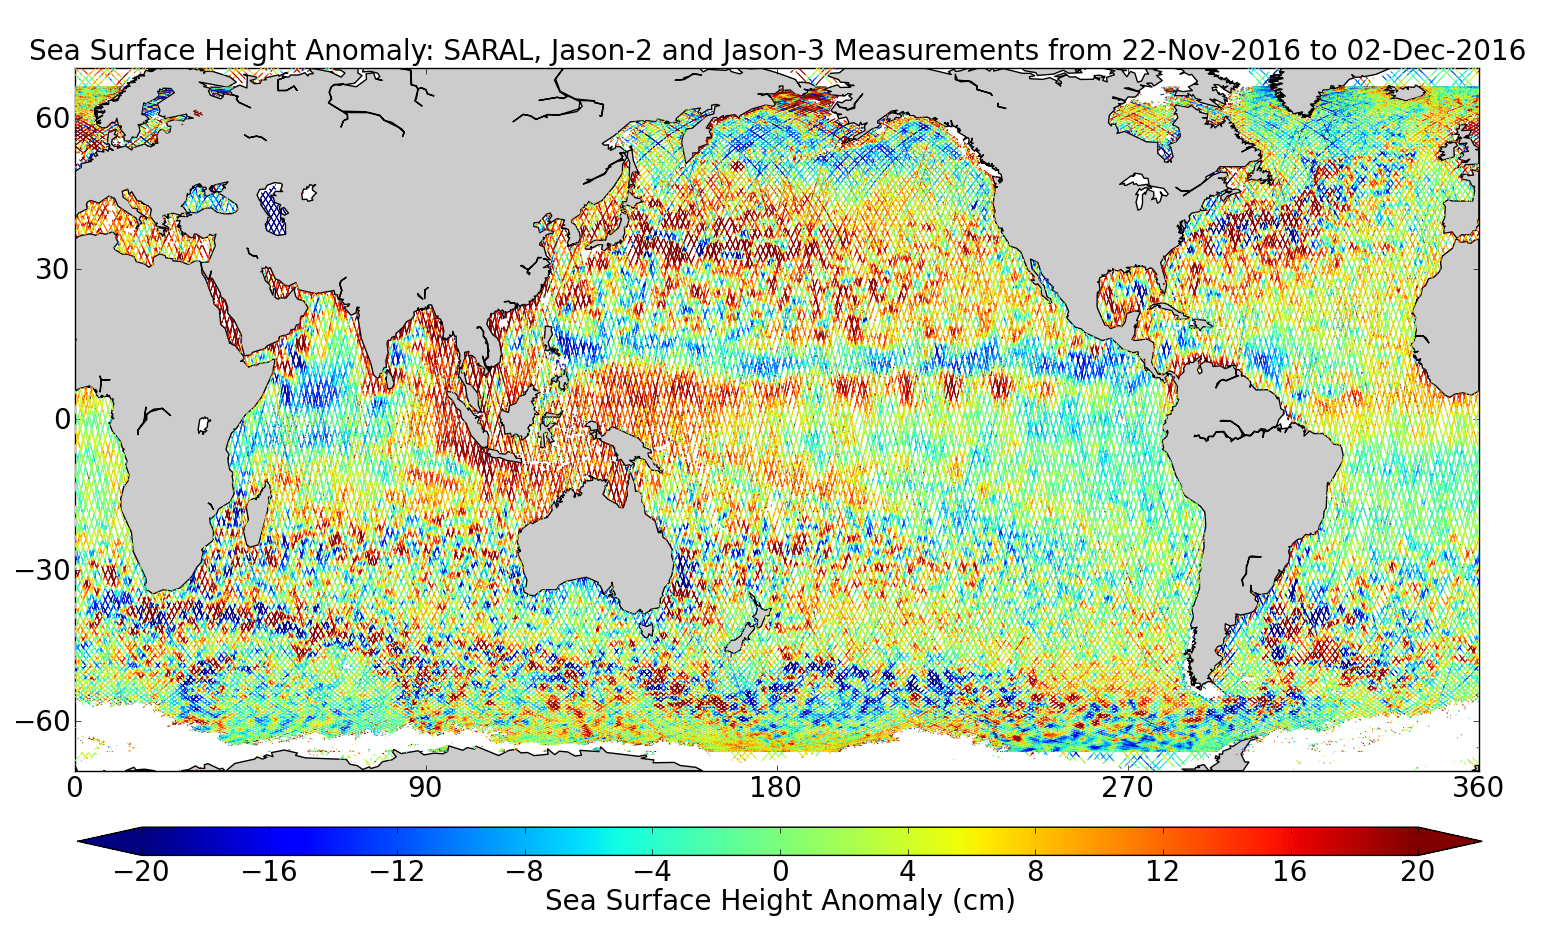 Sea Surface Height Anomaly: SARAL, Jason-2 and Jason-3 Measurements from 22-Nov-2016 to 02-Dec-2016